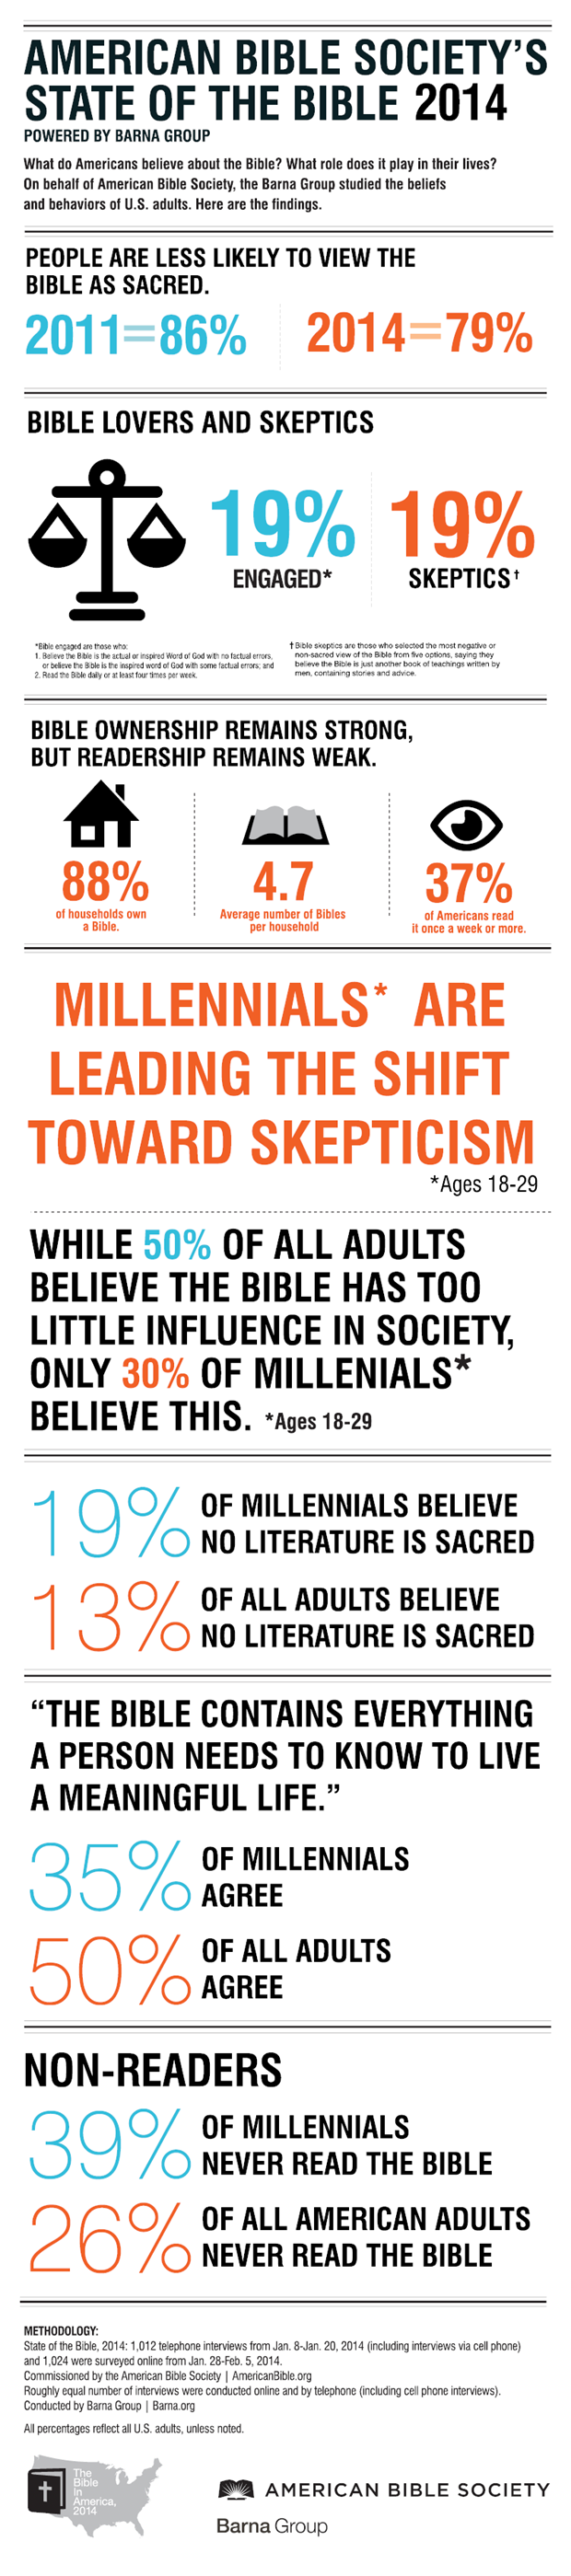 State of the Bible 2014